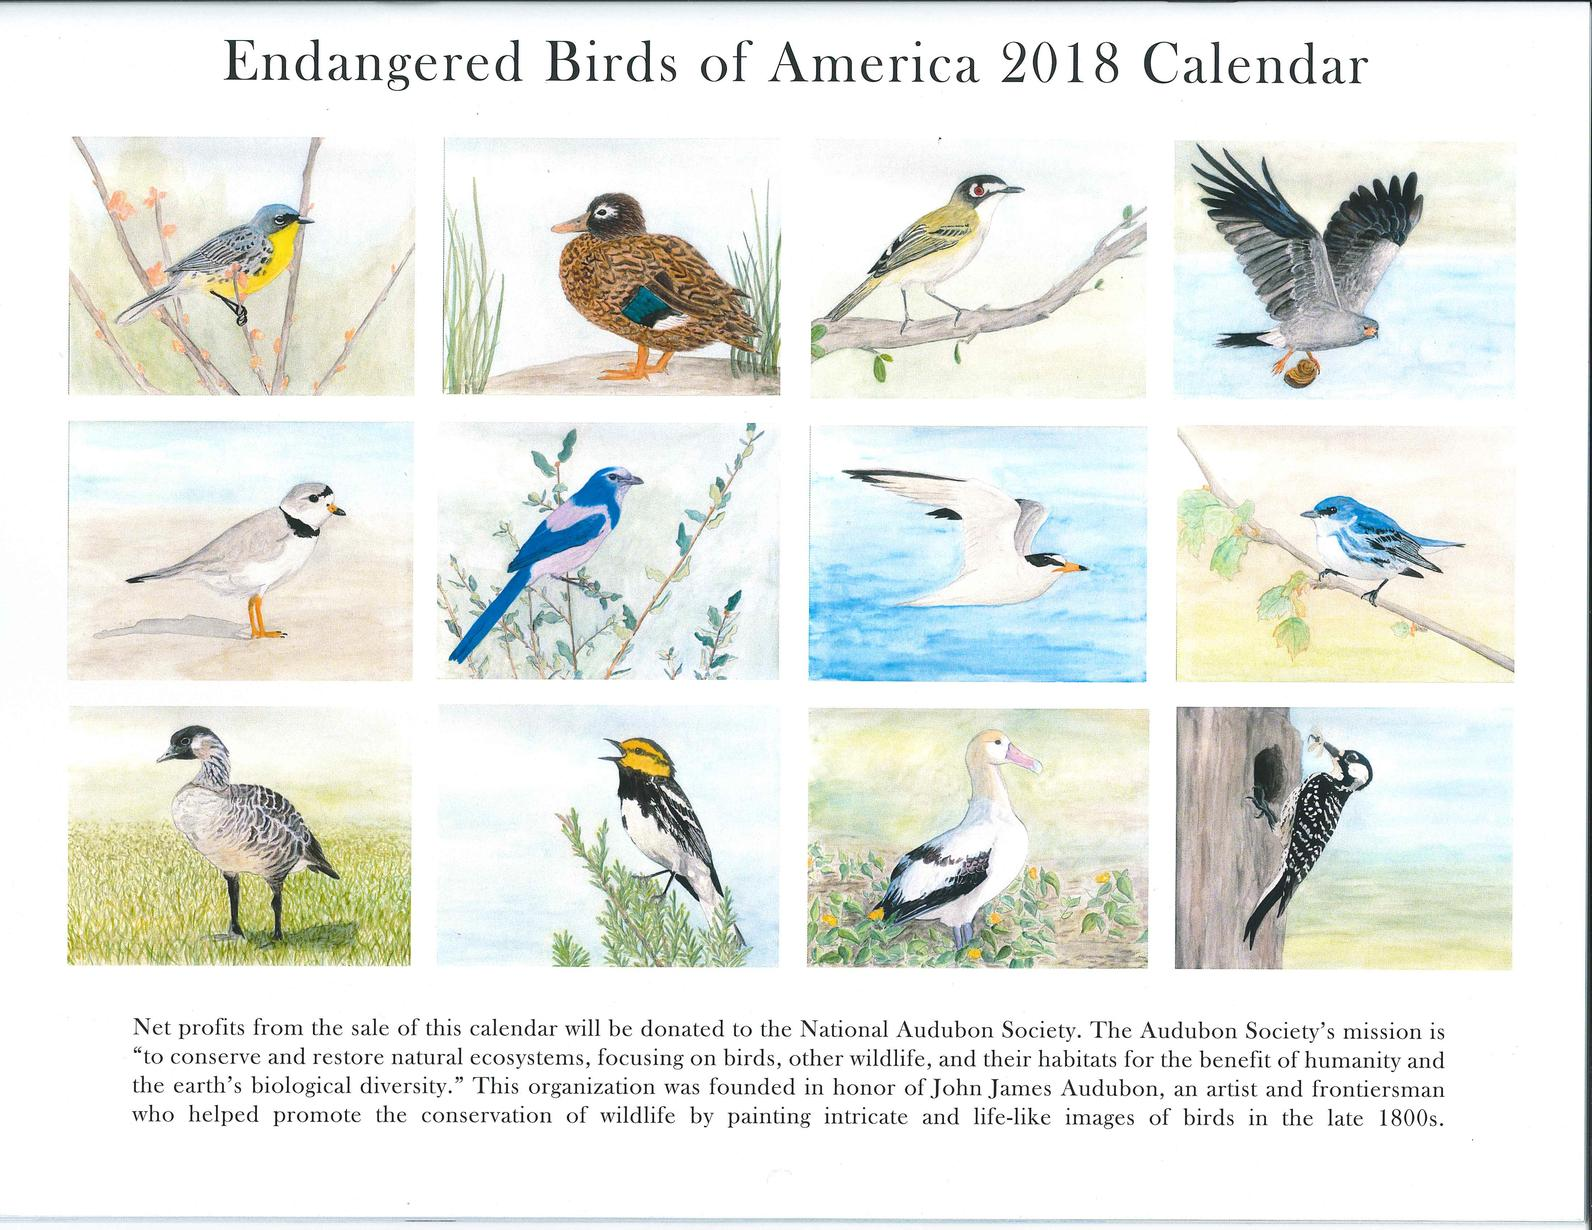 2018 Endangered Birds of America Calendar